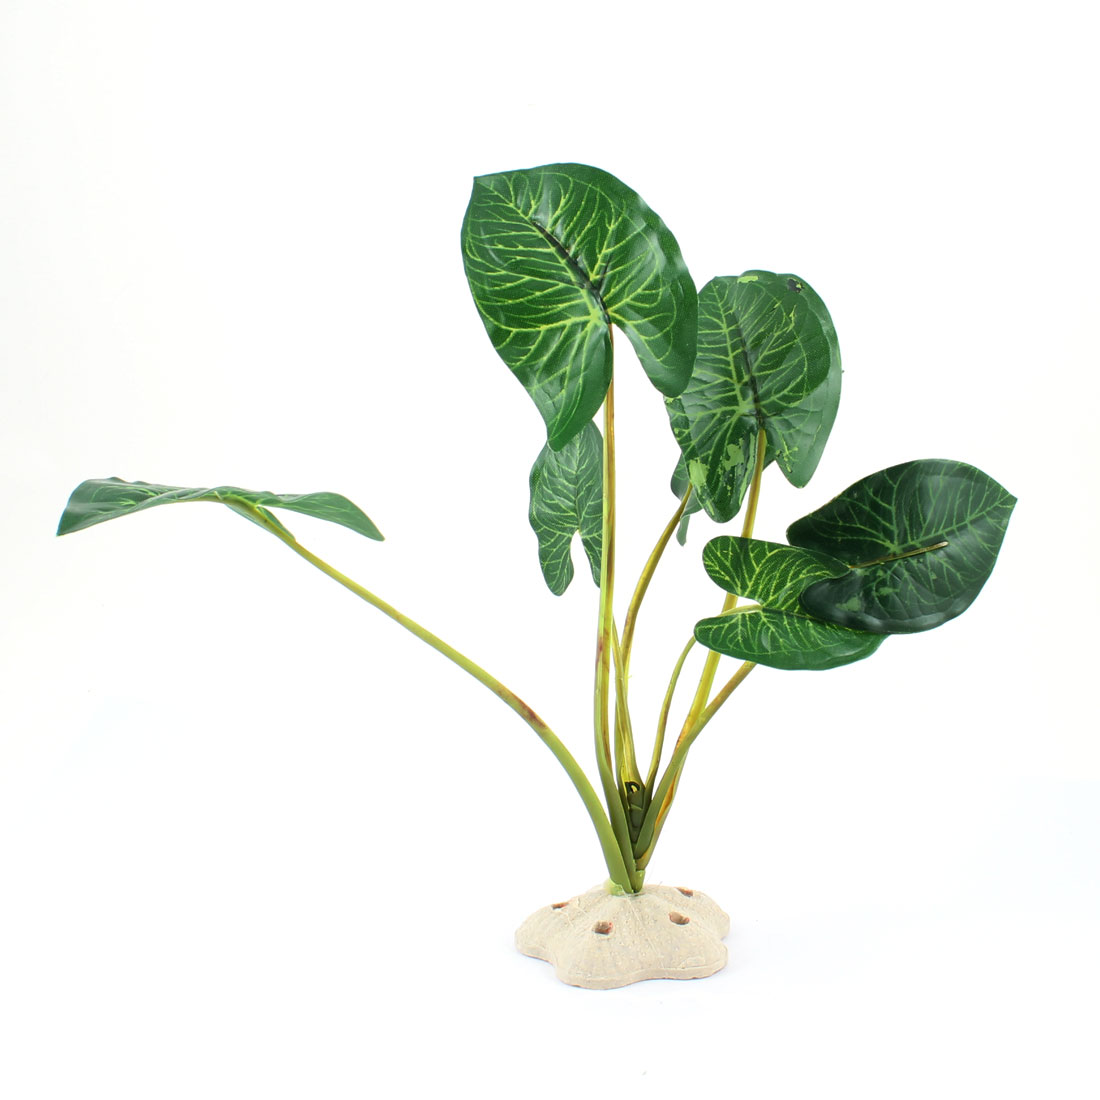 "8.9"" High Plastic Plants Grass Green Decoration for Fish Tank"